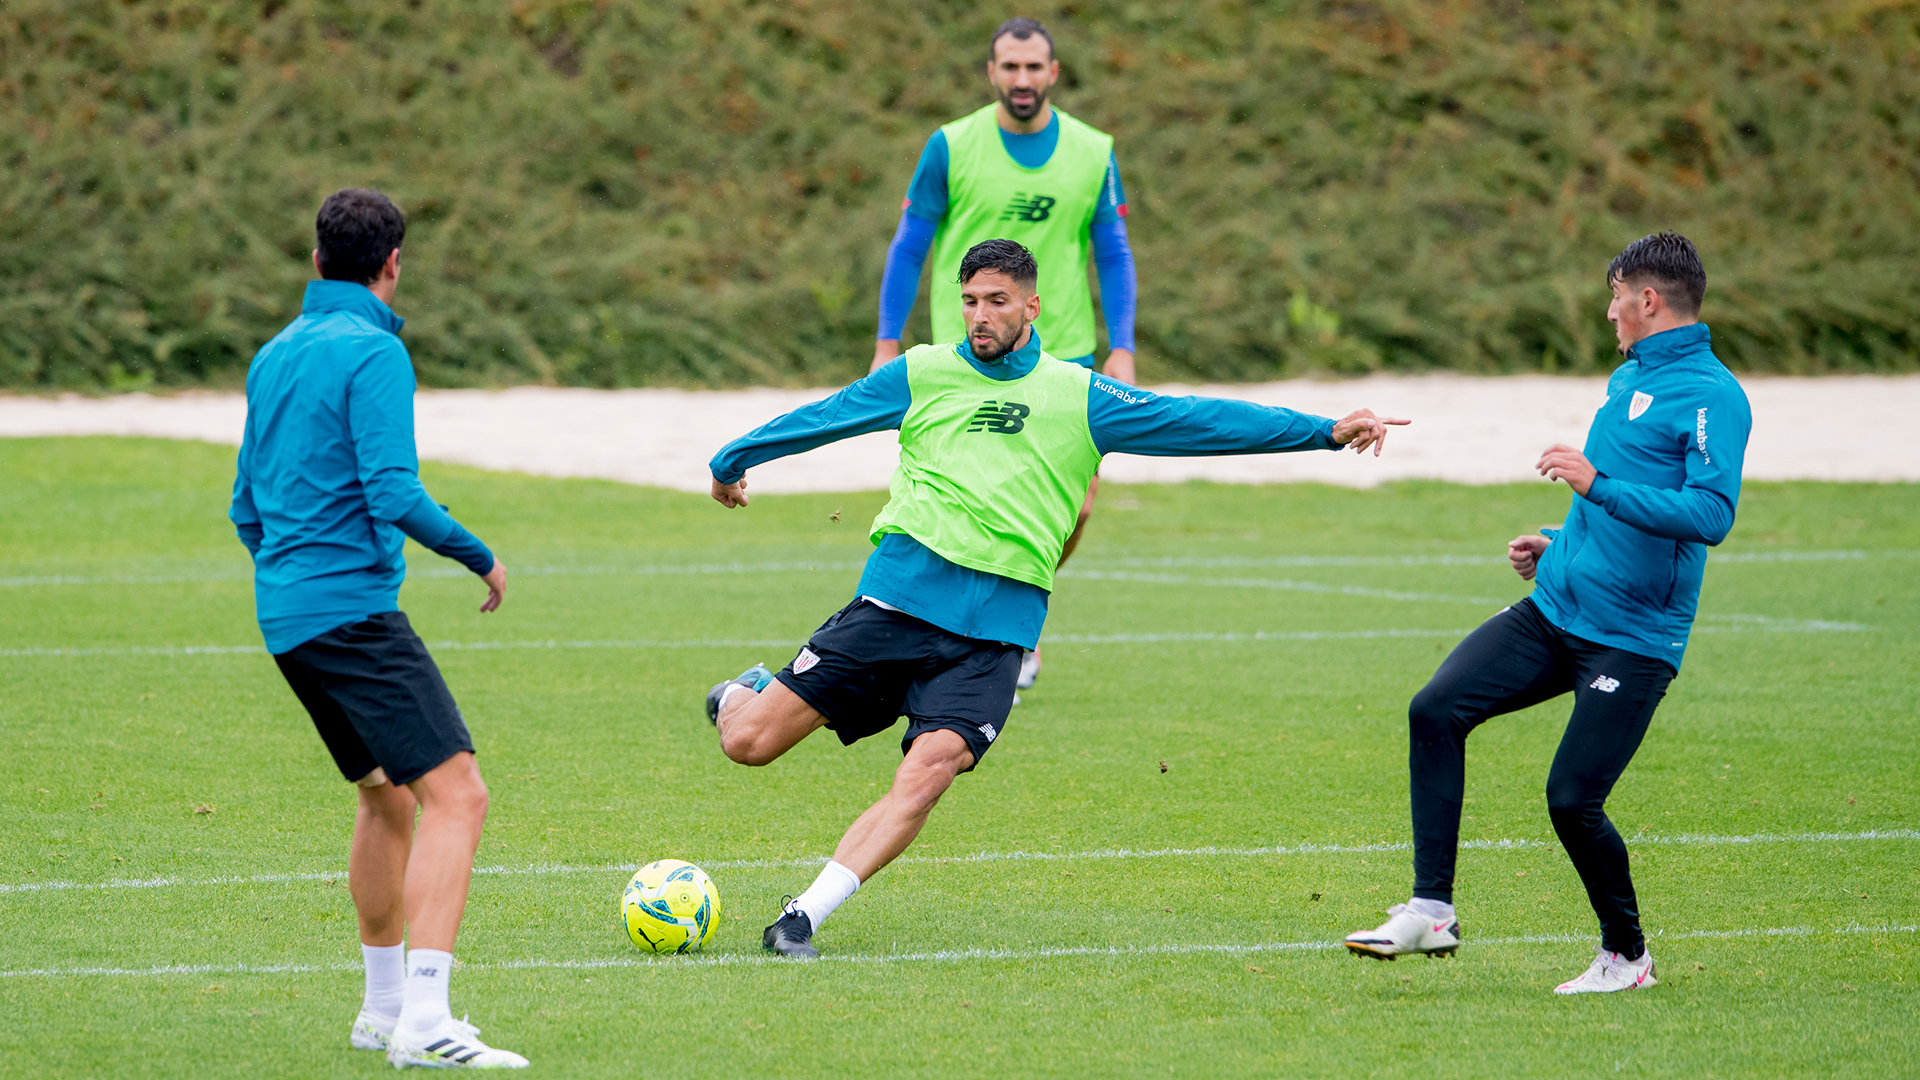 Match squad for friendly against Real Valladolid